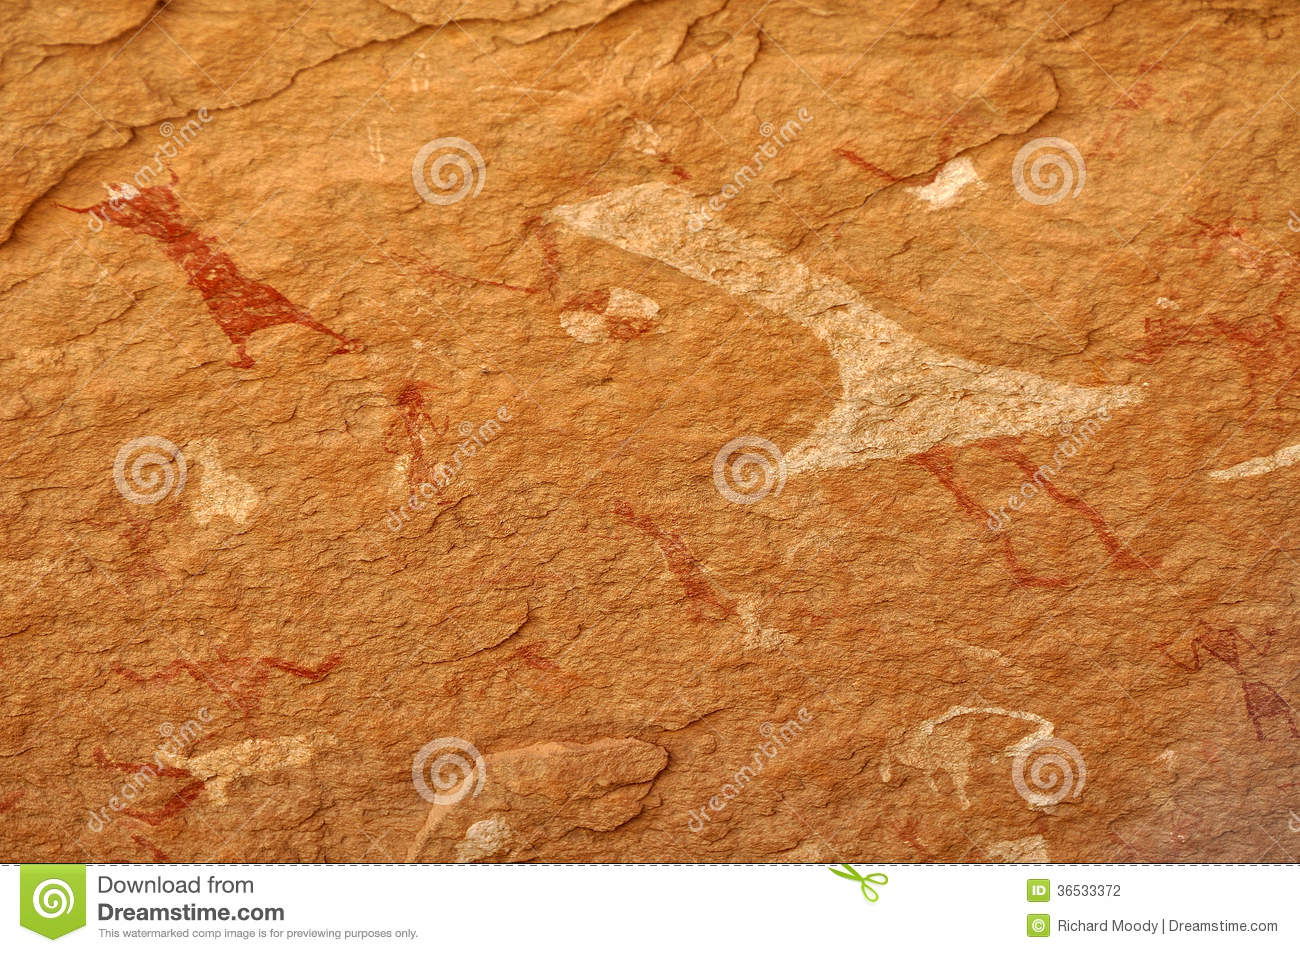 Cave Painting of Dancer